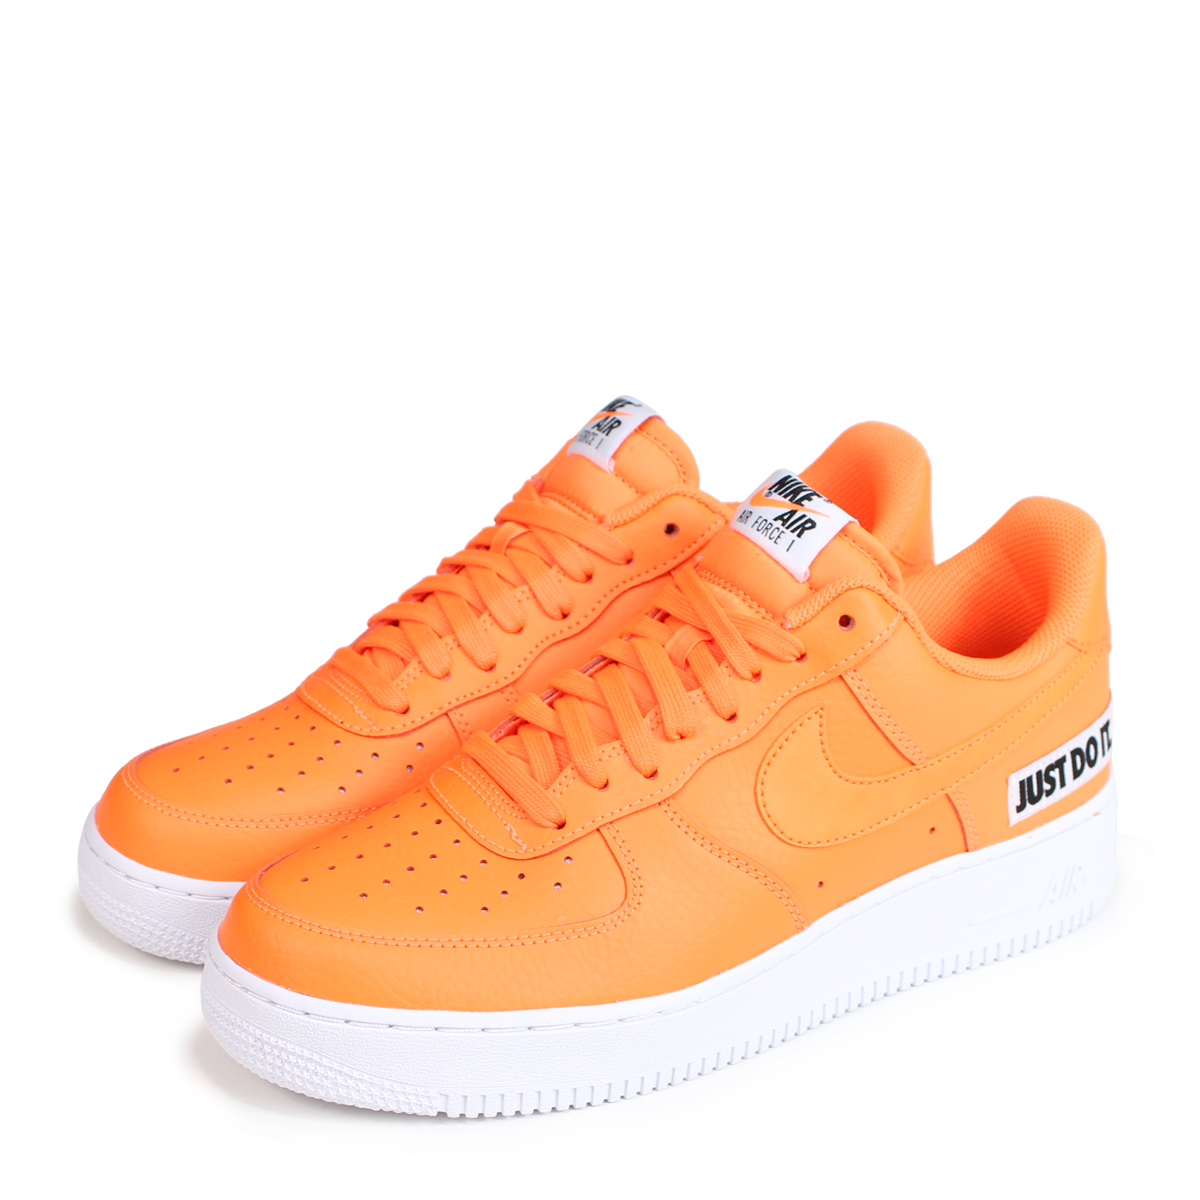 93eedff9ee91 NIKE AIR FORCE 1 07 LV8 JUST DO IT LEATHER Nike air force 1 sneakers men  gap Dis BQ5360-800 orange  load planned Shinnyu load in reservation product  7 24 ...